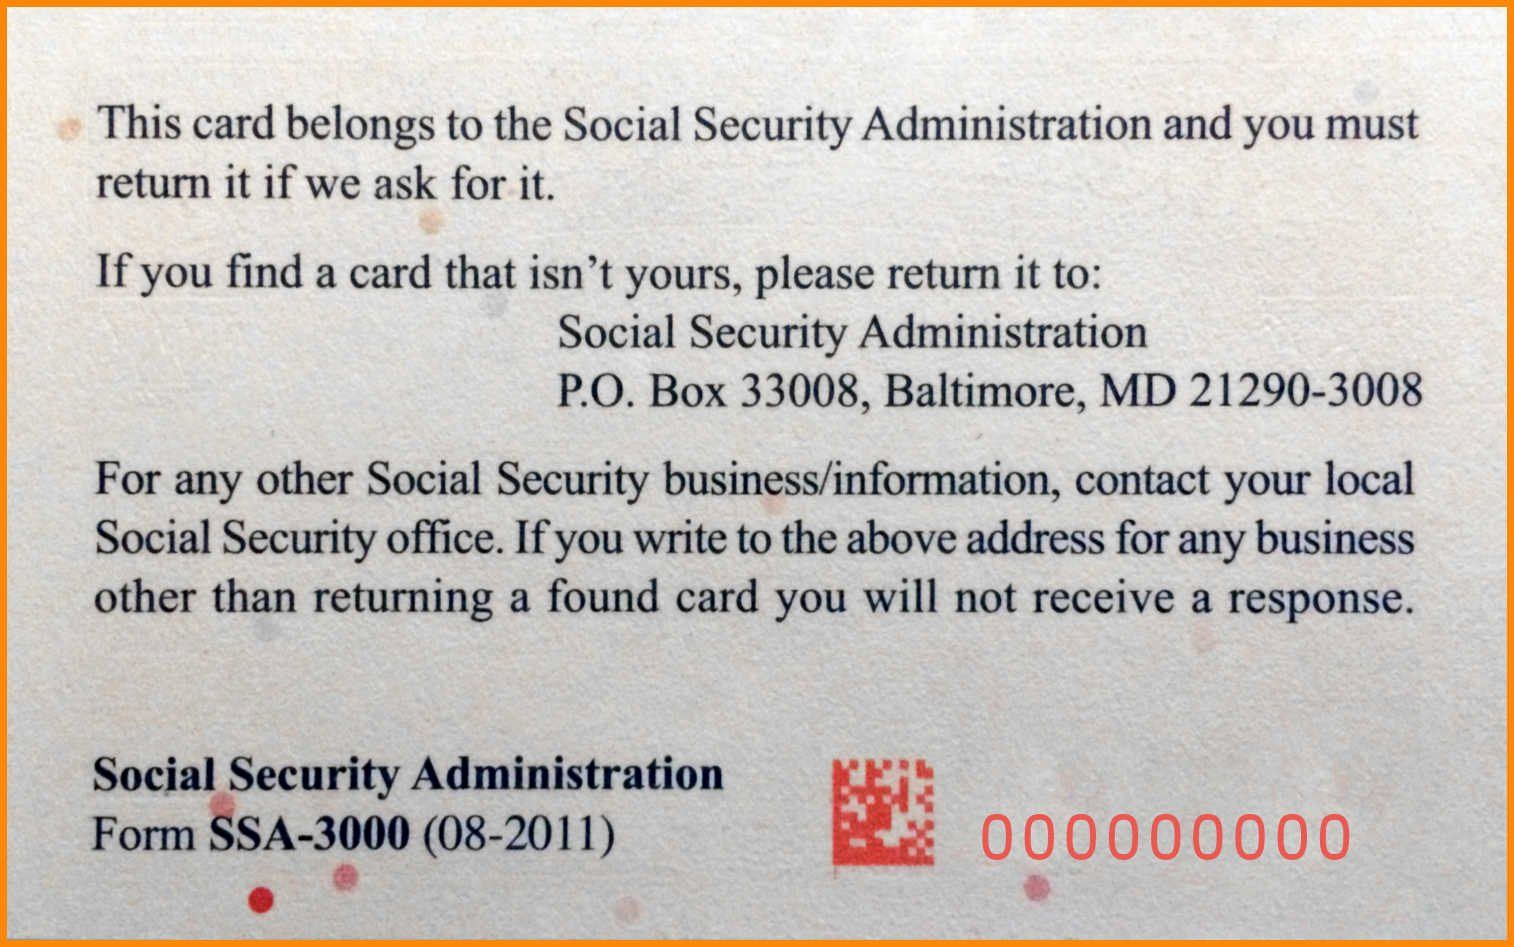 Local Social Security Office Phone Number For Blank Social Security Card Template